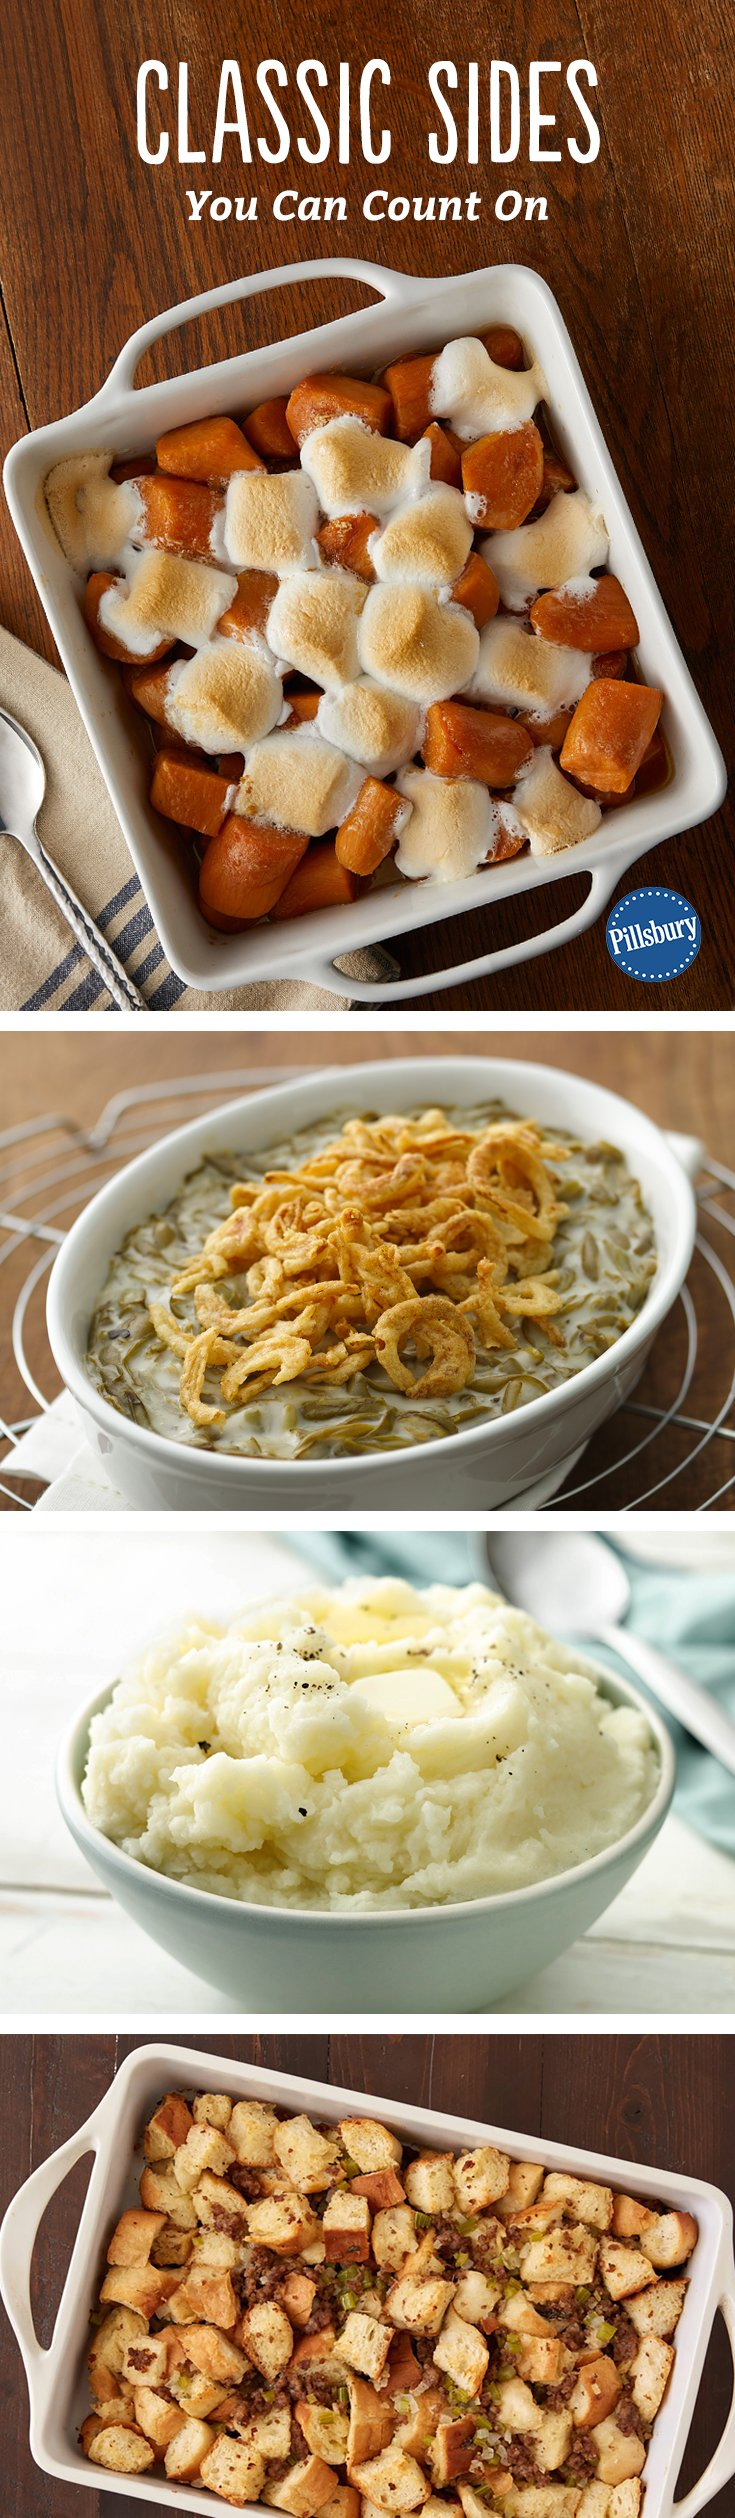 There's a reason why people hold near and dear to the classics: they're tried and true and easy to do! From sweet potatoes to green bean casserole and classic stuffing, you're going to want these recipes for your go-to Turkey Day sides.